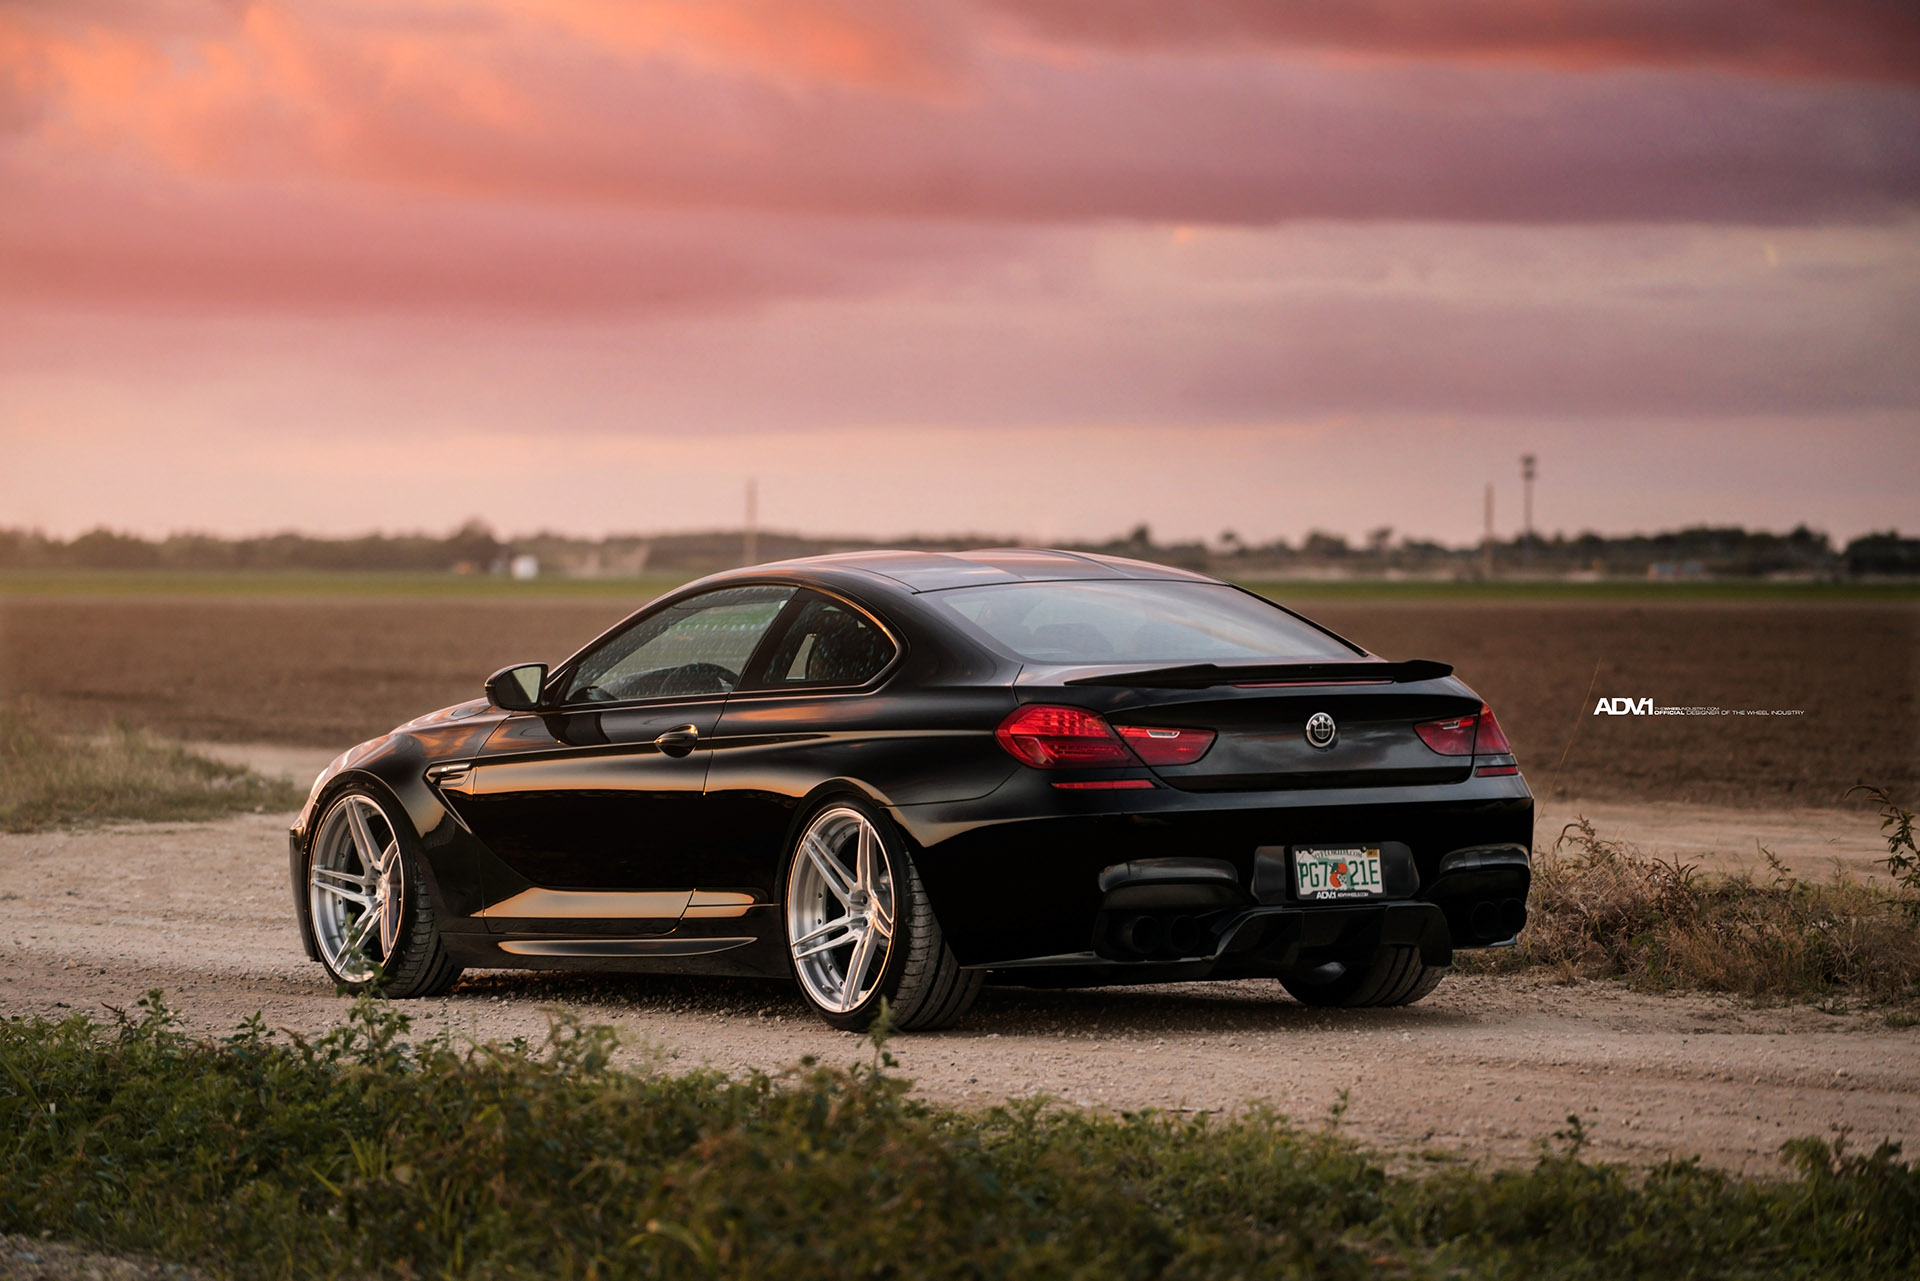 Black Sapphire Bmw M6 Adorned With Adv 1 Directional Wheels